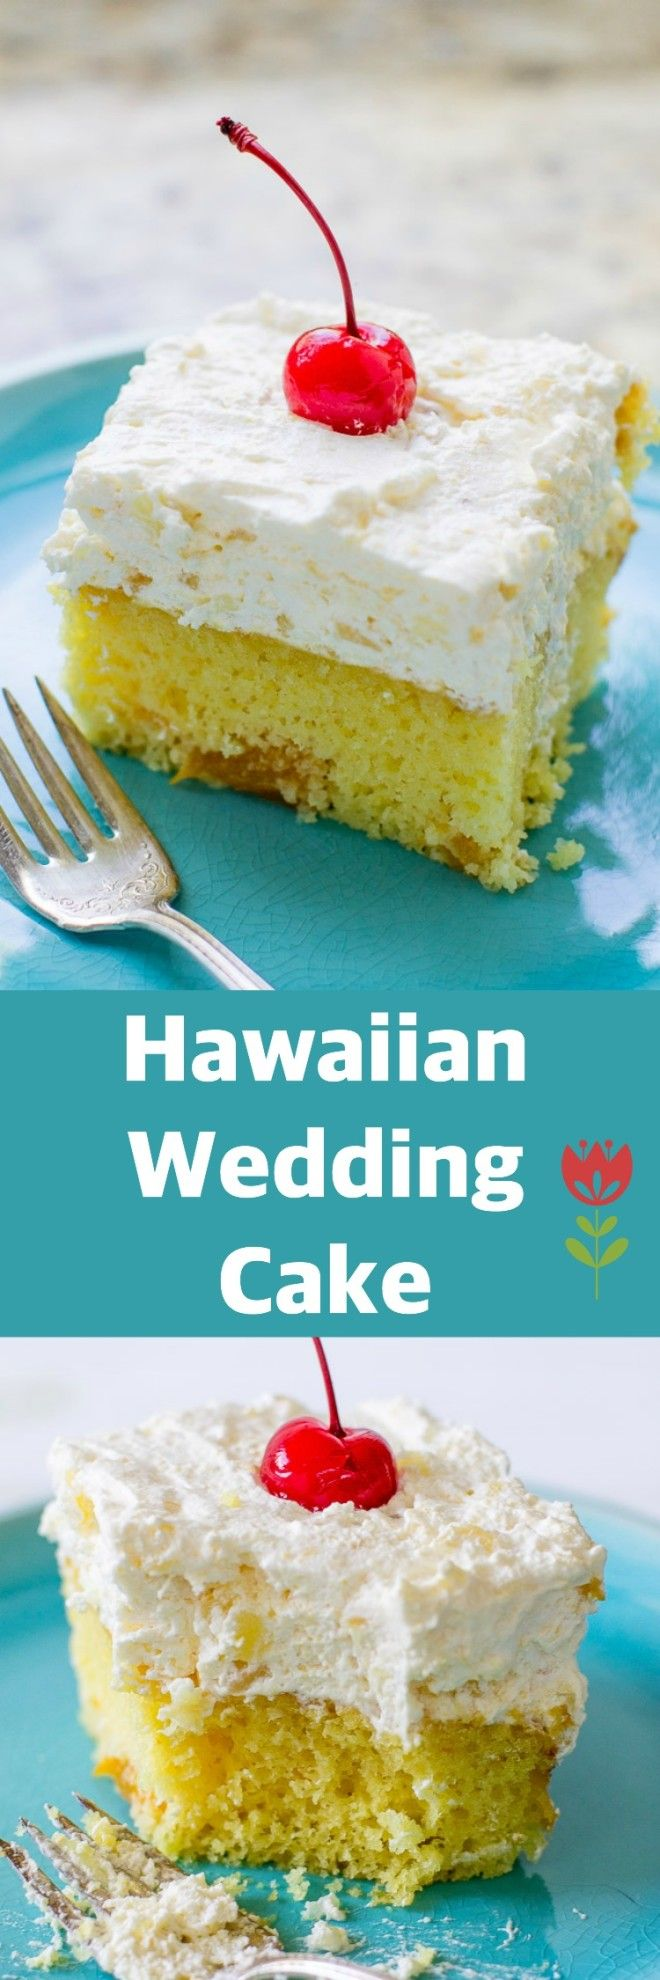 With oranges in the batter and pineapple in the frosting, Hawaiian Wedding Cake is deliciously tropical on your plate and easier to make than you expect.